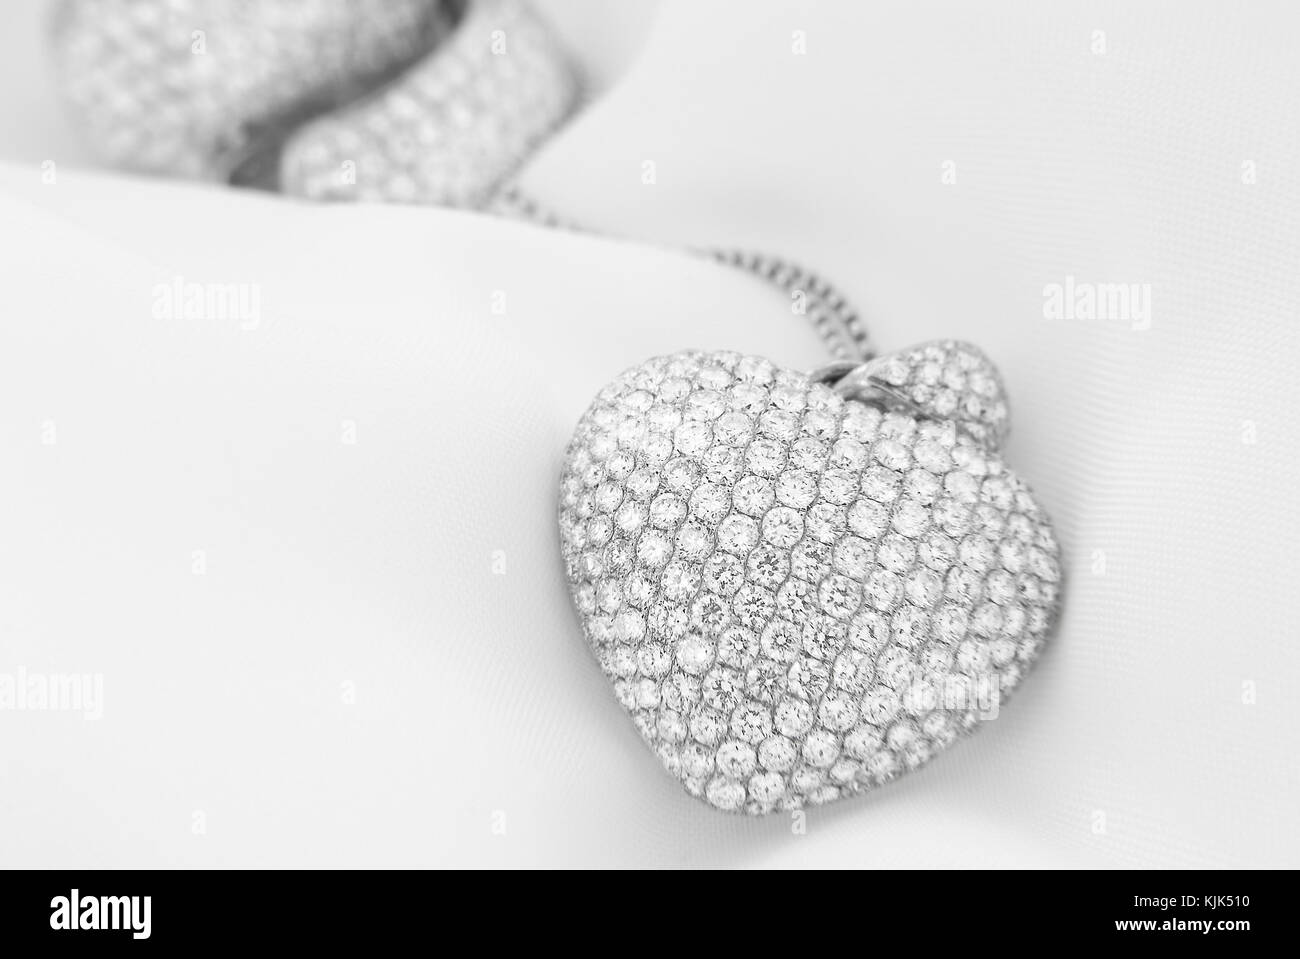 White gold earrings and heart shaped necklace with white diamonds on soft blurred background - Stock Image